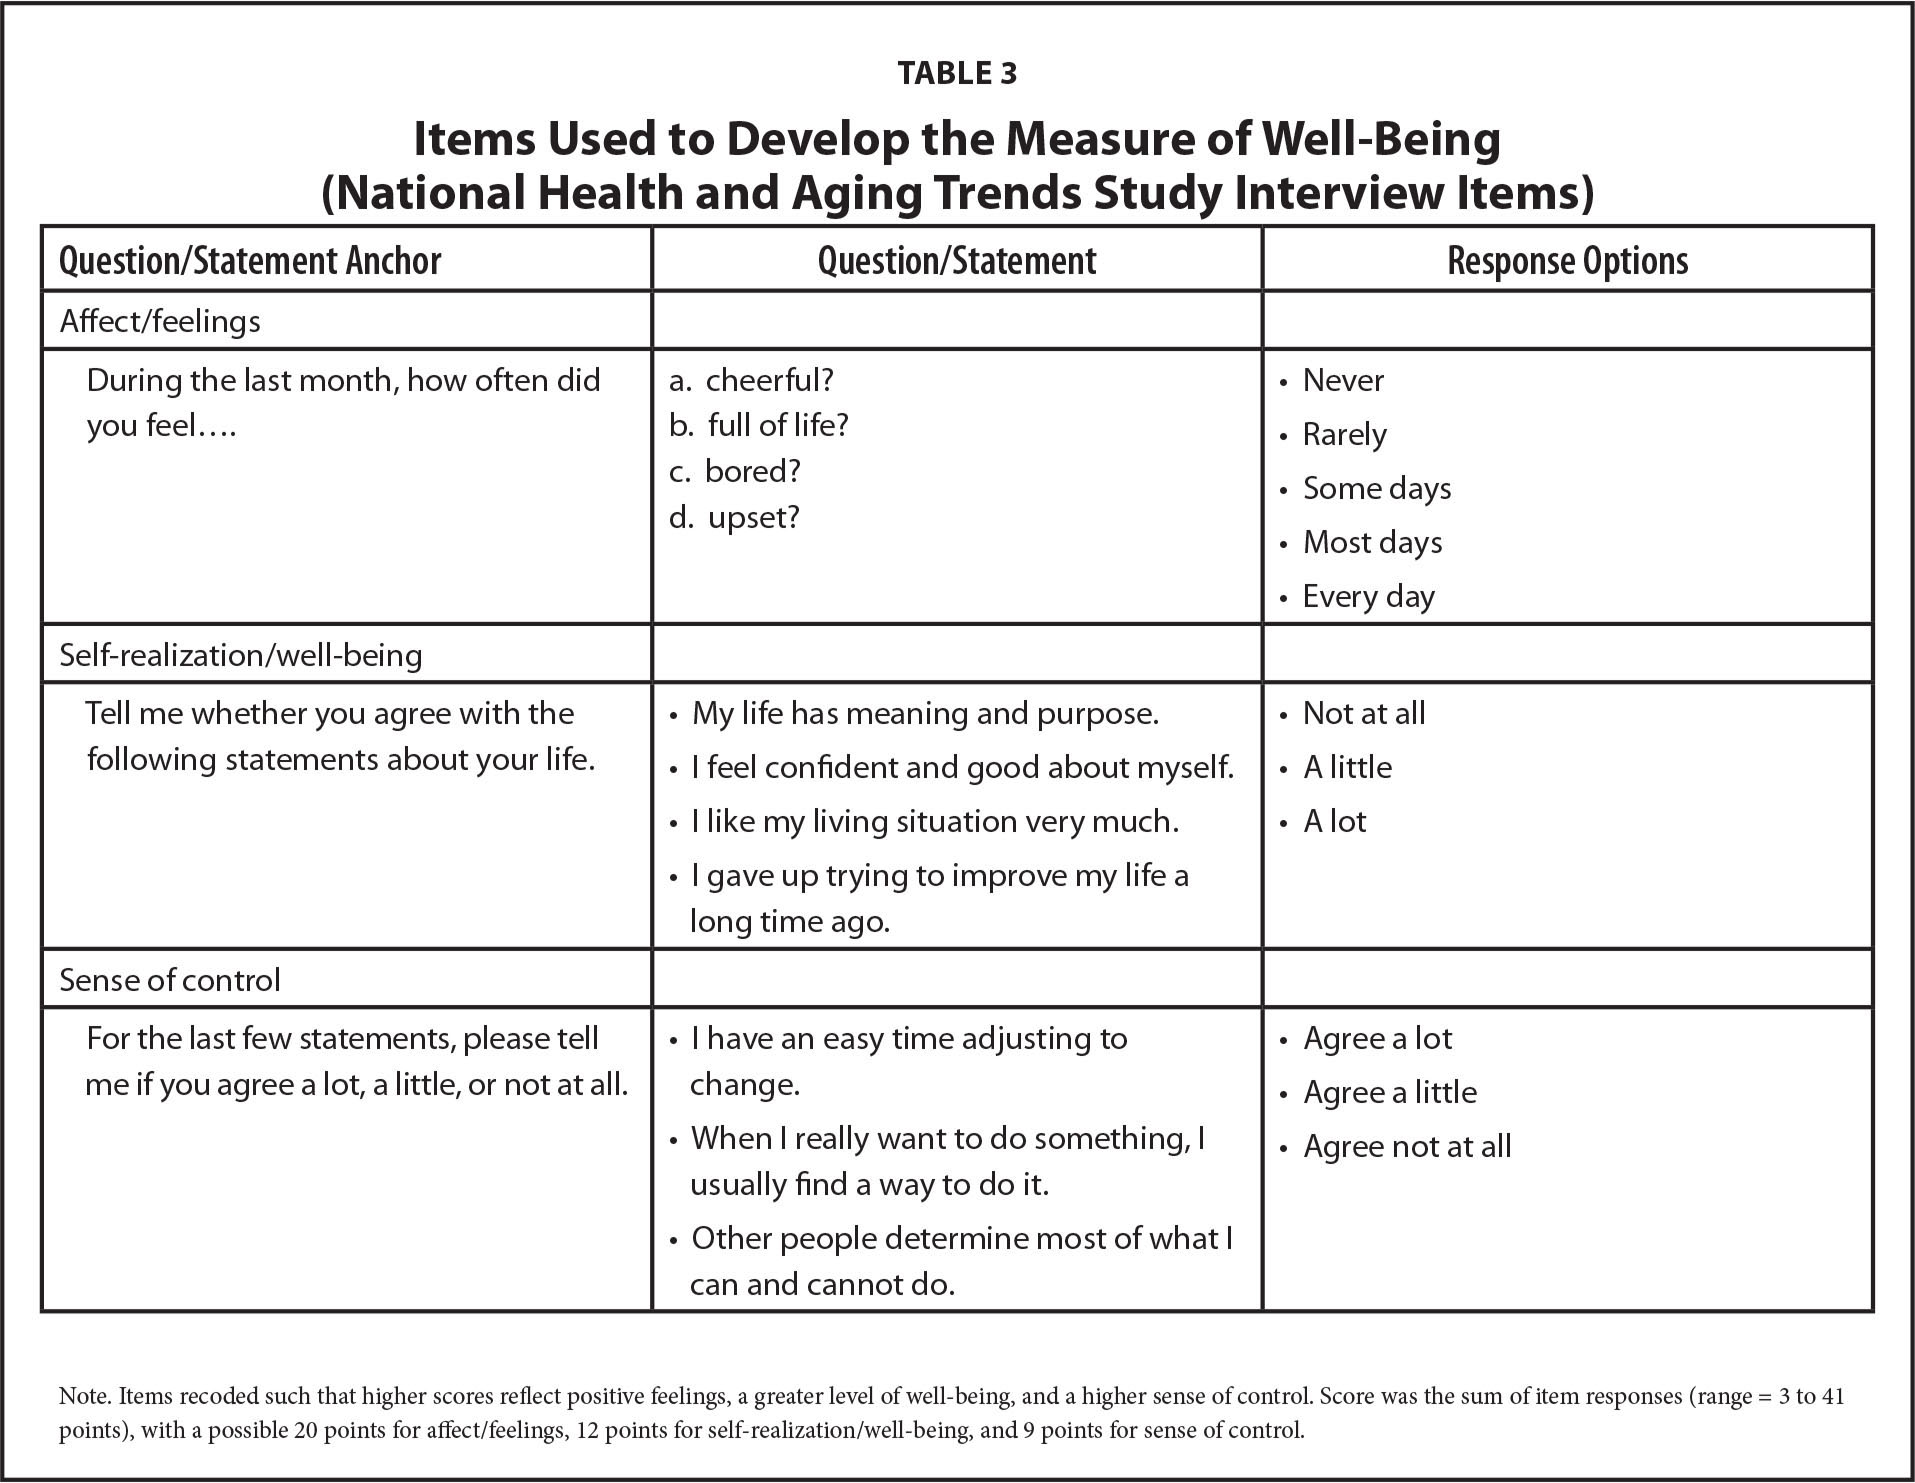 Items Used to Develop the Measure of Well-Being (National Health and Aging Trends Study Interview Items)